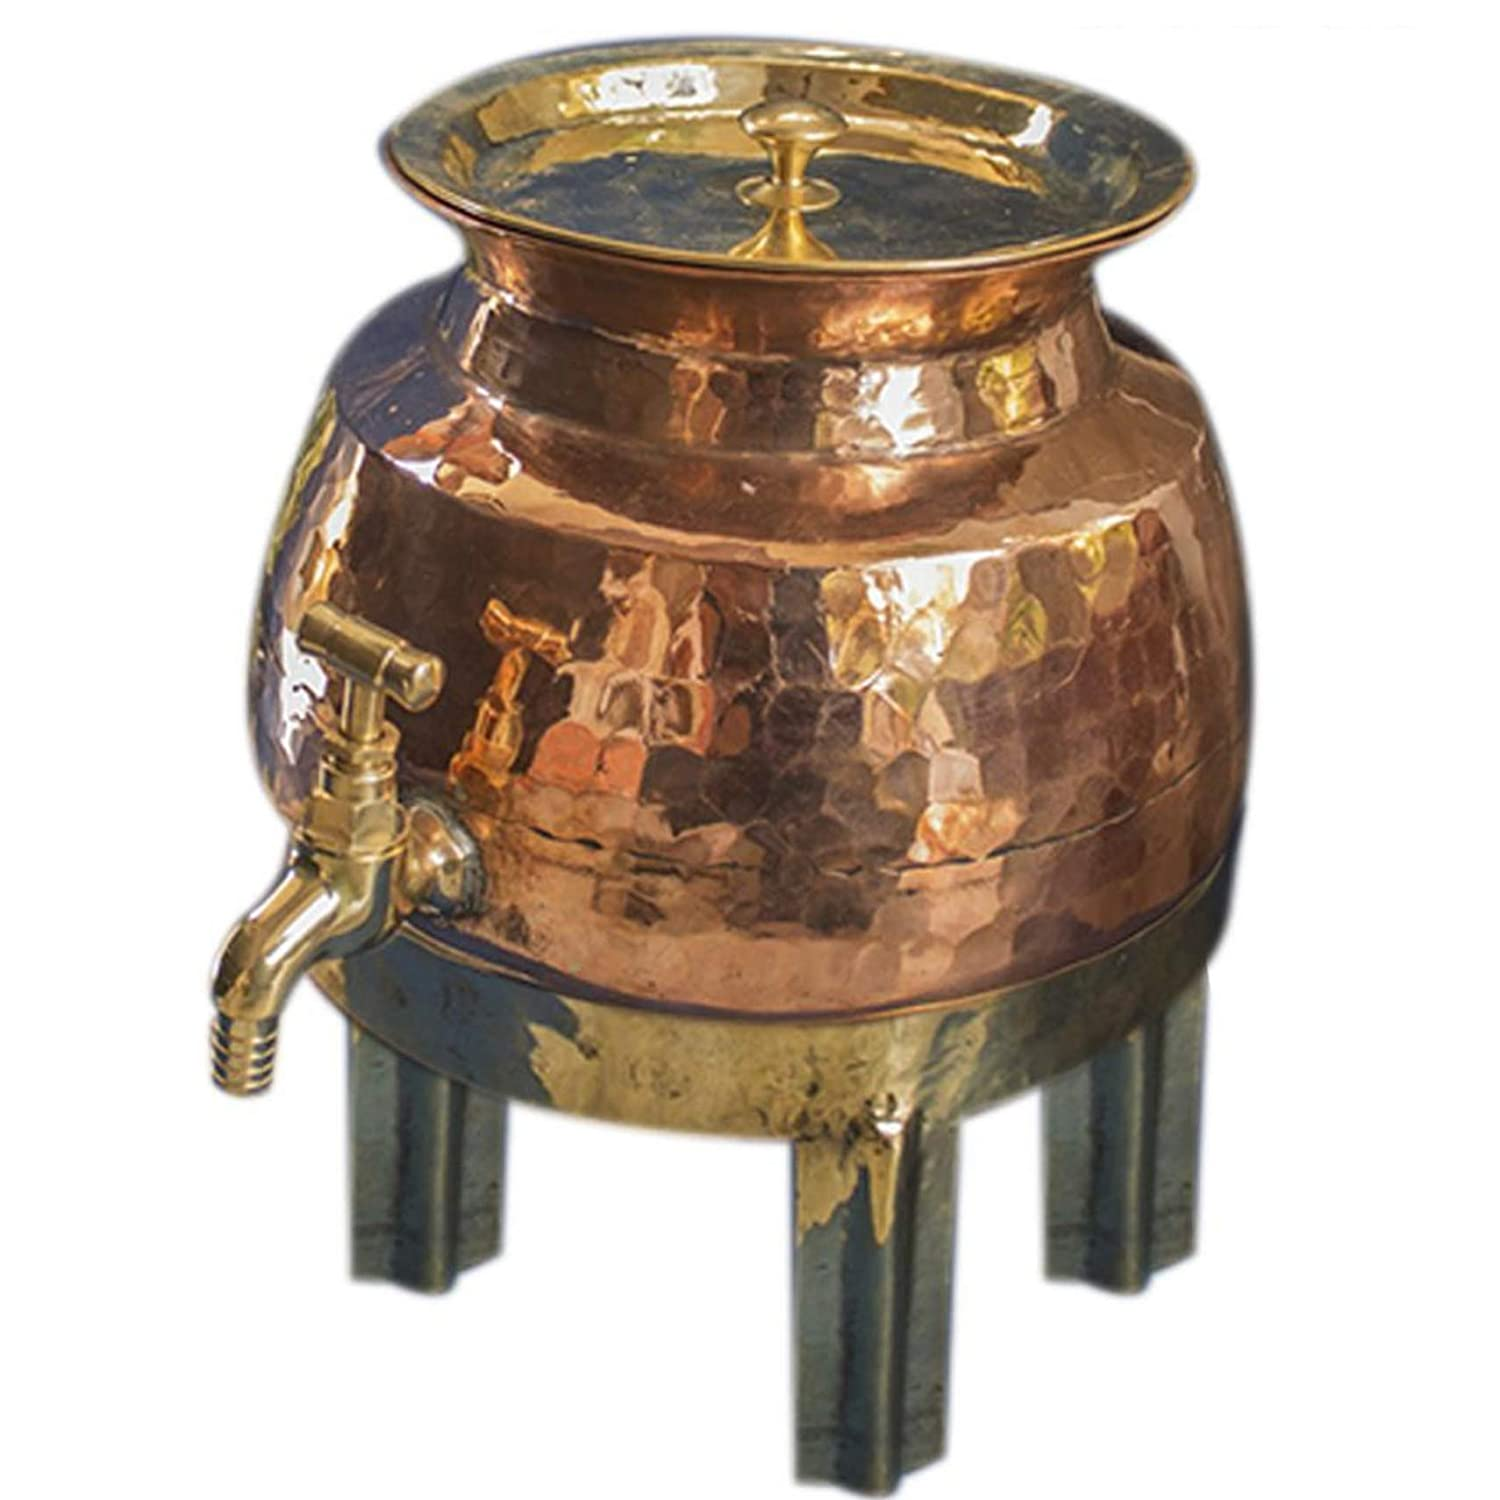 Traditional Copper Water Dispenser Handmade Price reduction Panjabi Hammered 5L Limited price sale